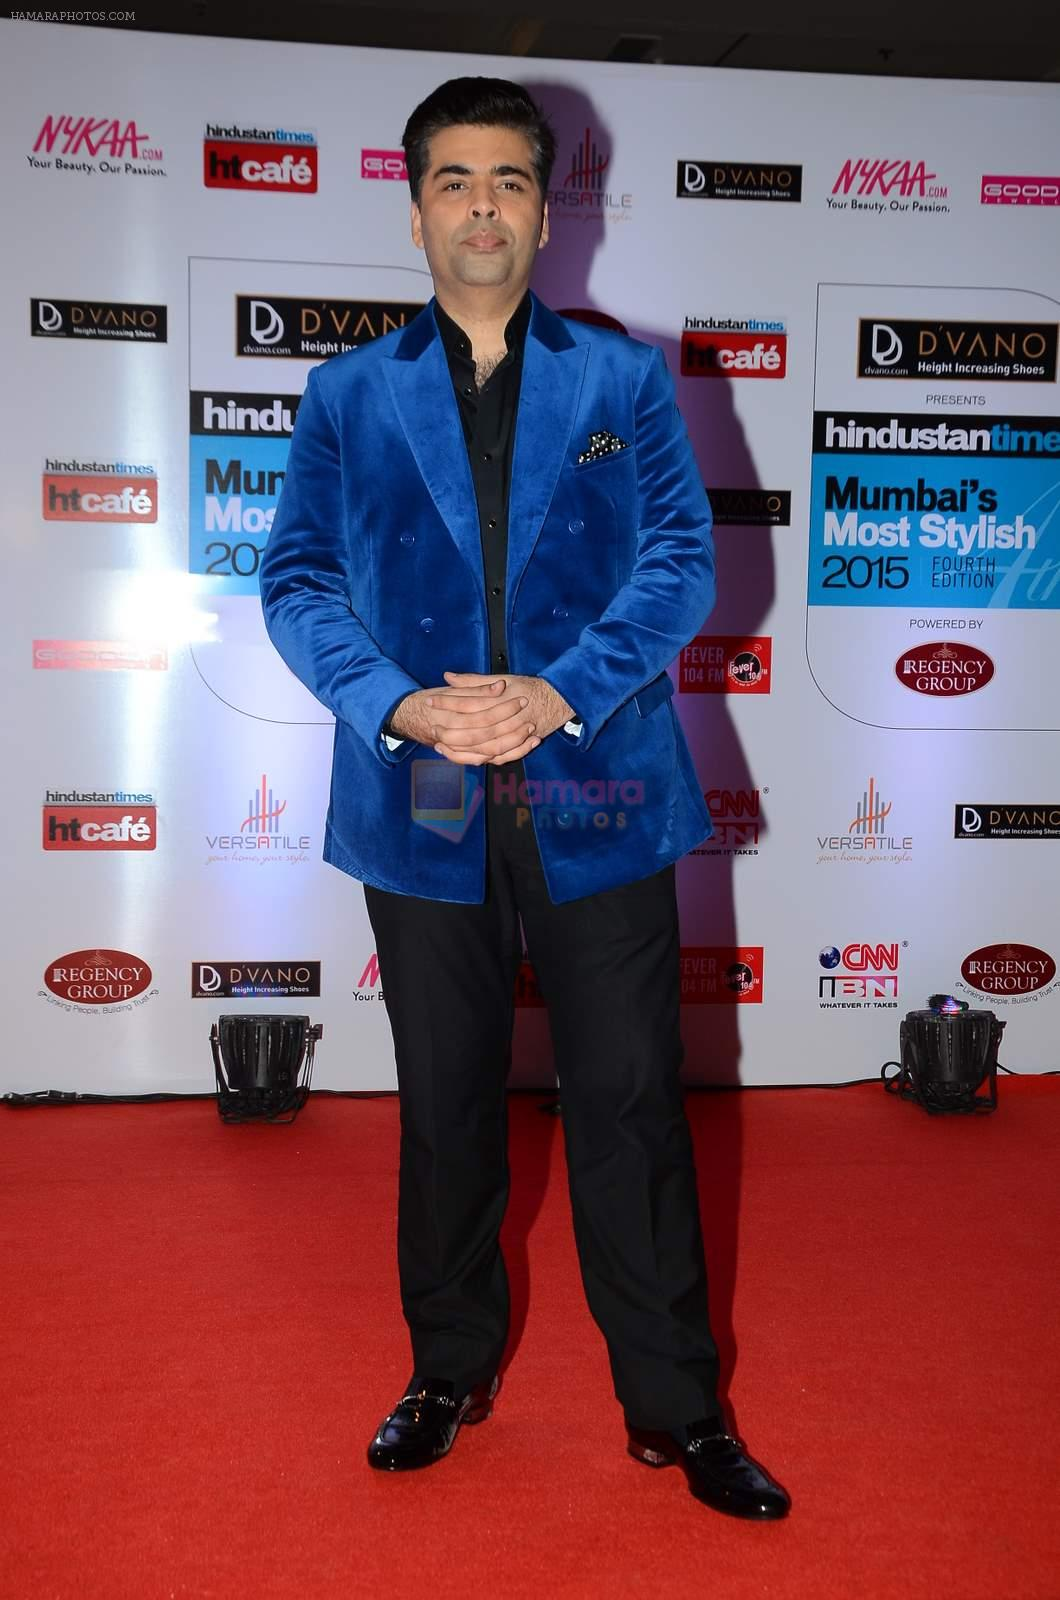 Karan Johar at HT Mumbai's Most Stylish Awards 2015 in Mumbai on 26th March 2015